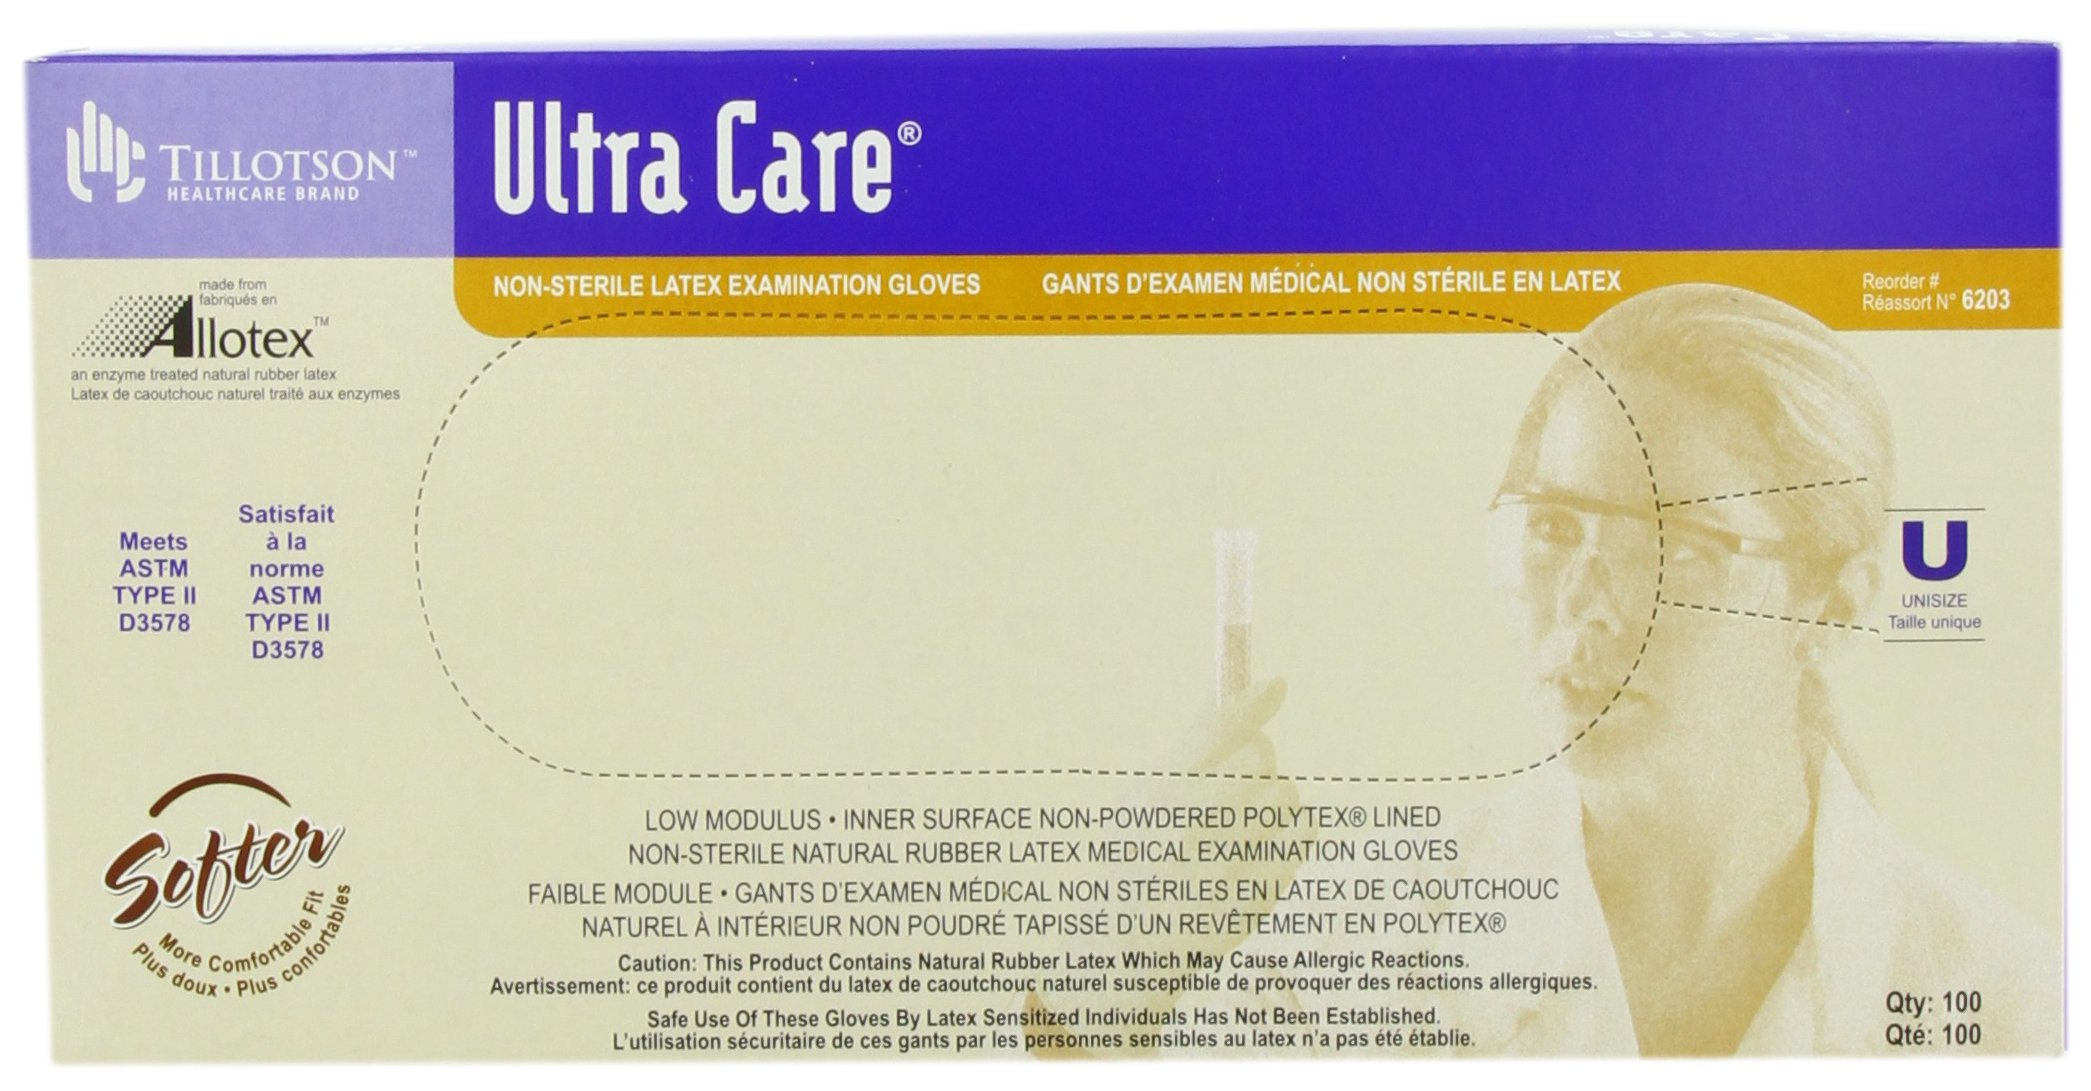 Tillotson Ultra Care Latex Exam Gloves, Unisize, 100 Count